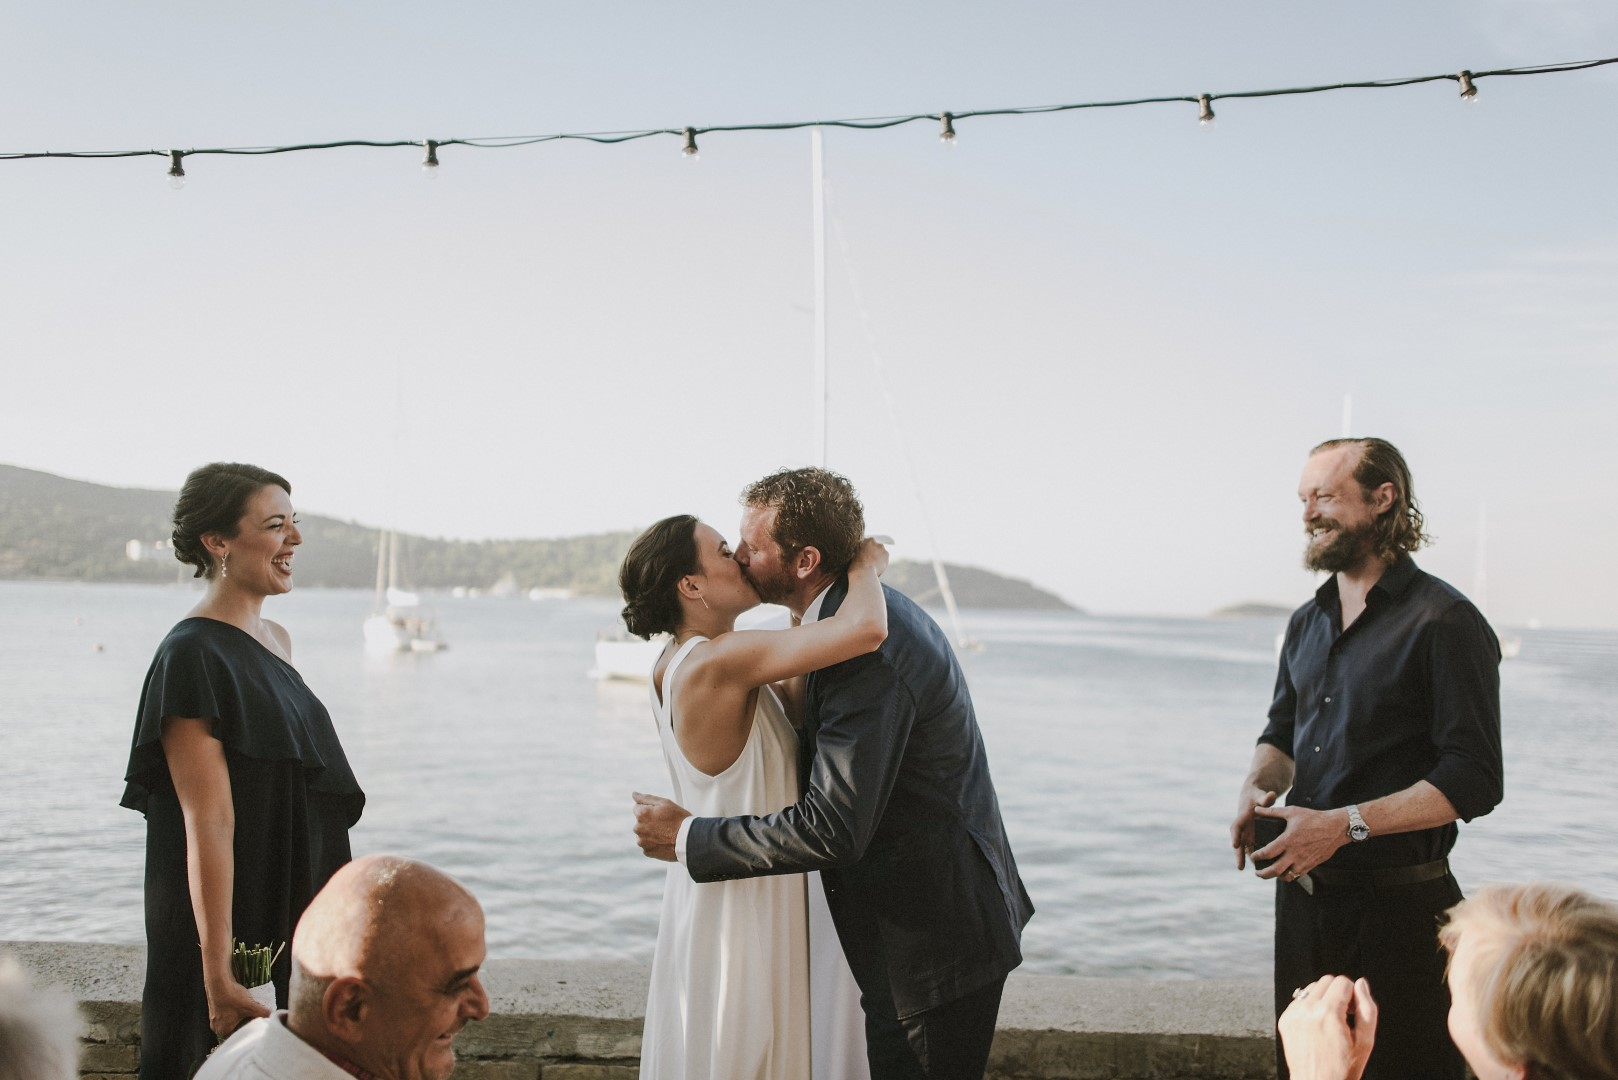 Vis island wedding ceremony. In the background we see the sea and mountains. The best man and maid of honour are laughing while the couple is kissing.